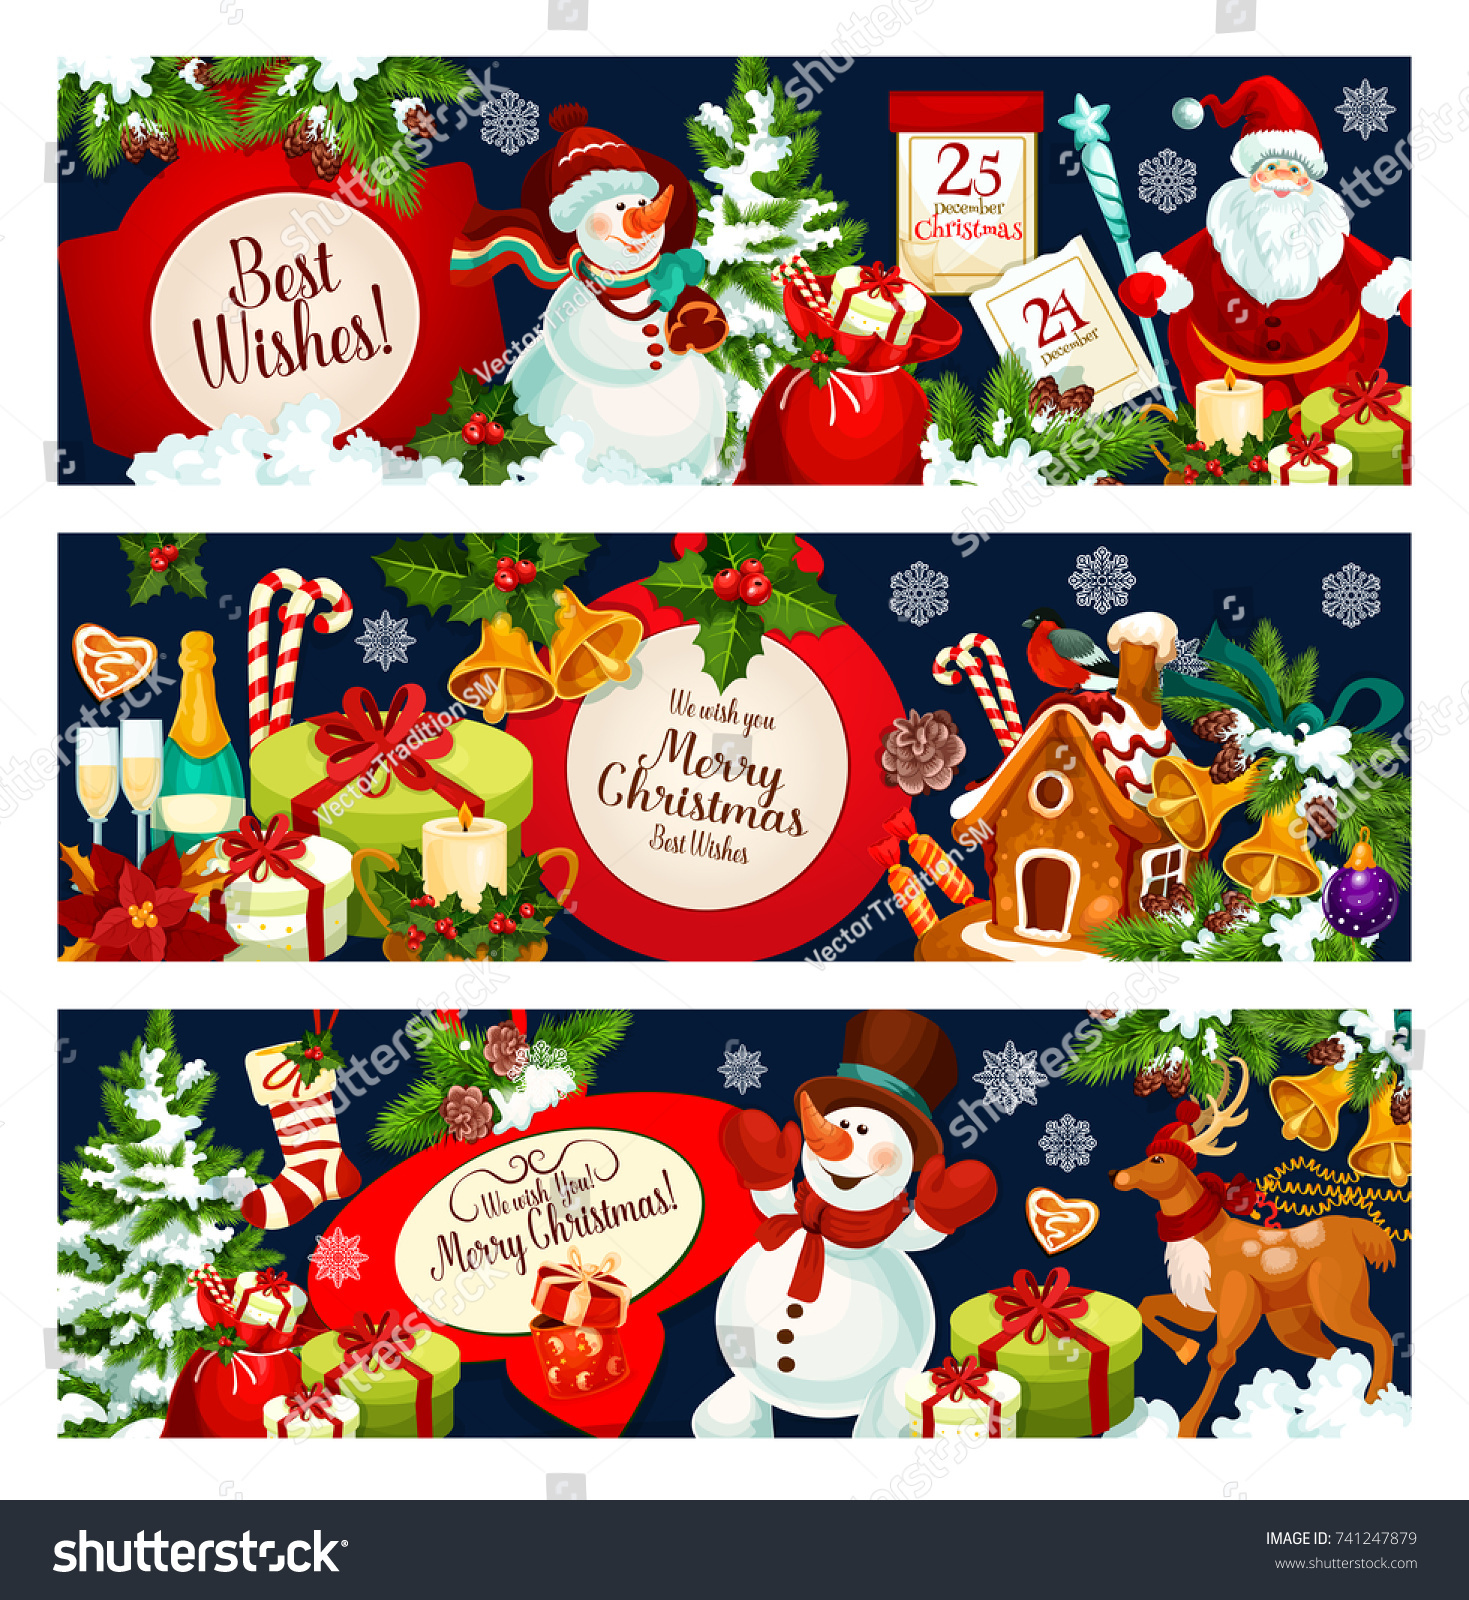 Merry Christmas Greetings Best Wishes Banners Stock Vector Royalty